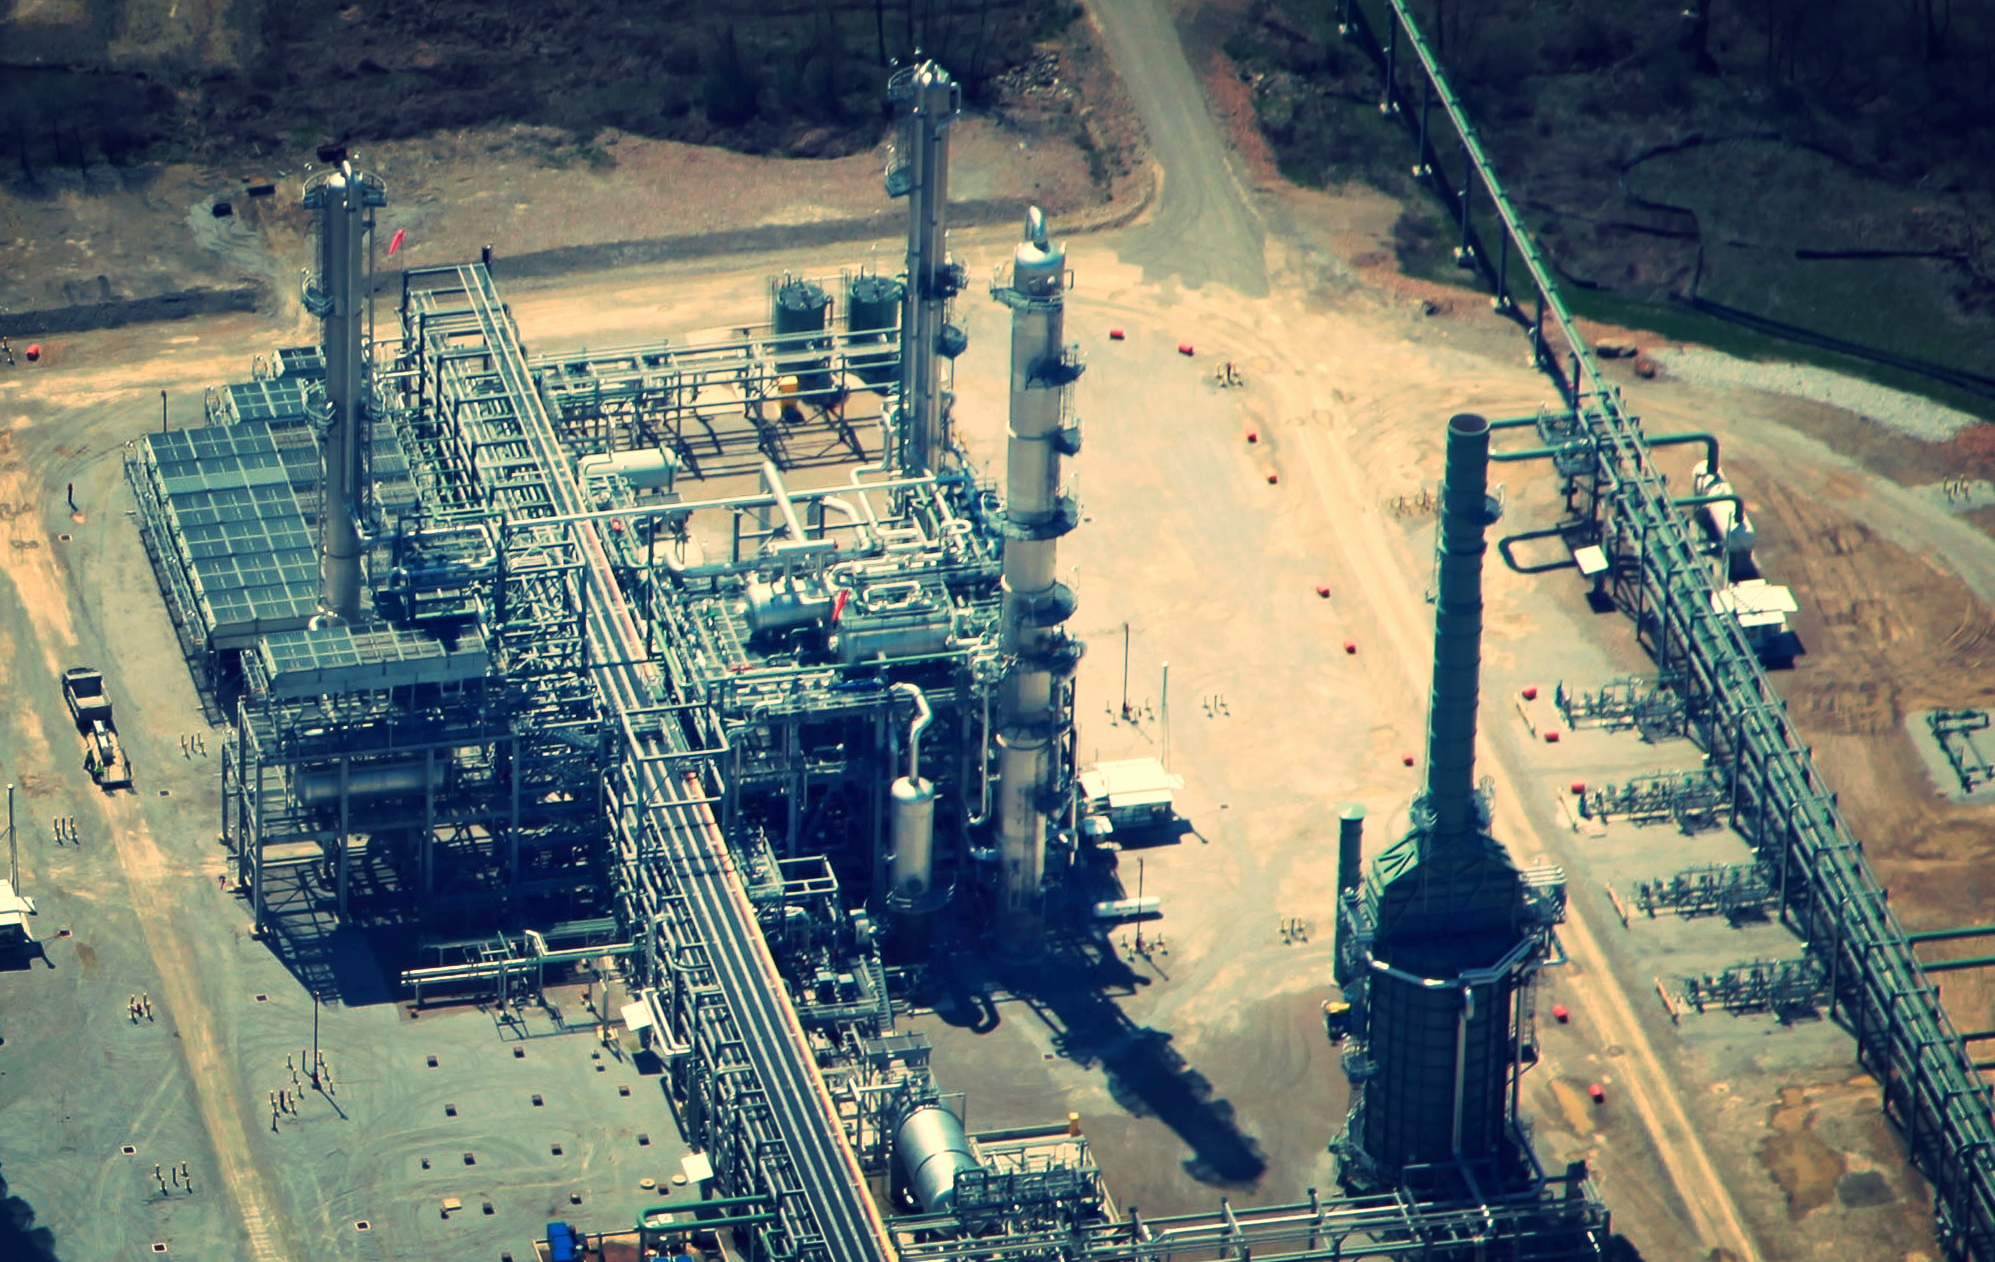 The training manual subjects cover most of the major equipment and processes associated with a gas plant or field facility.